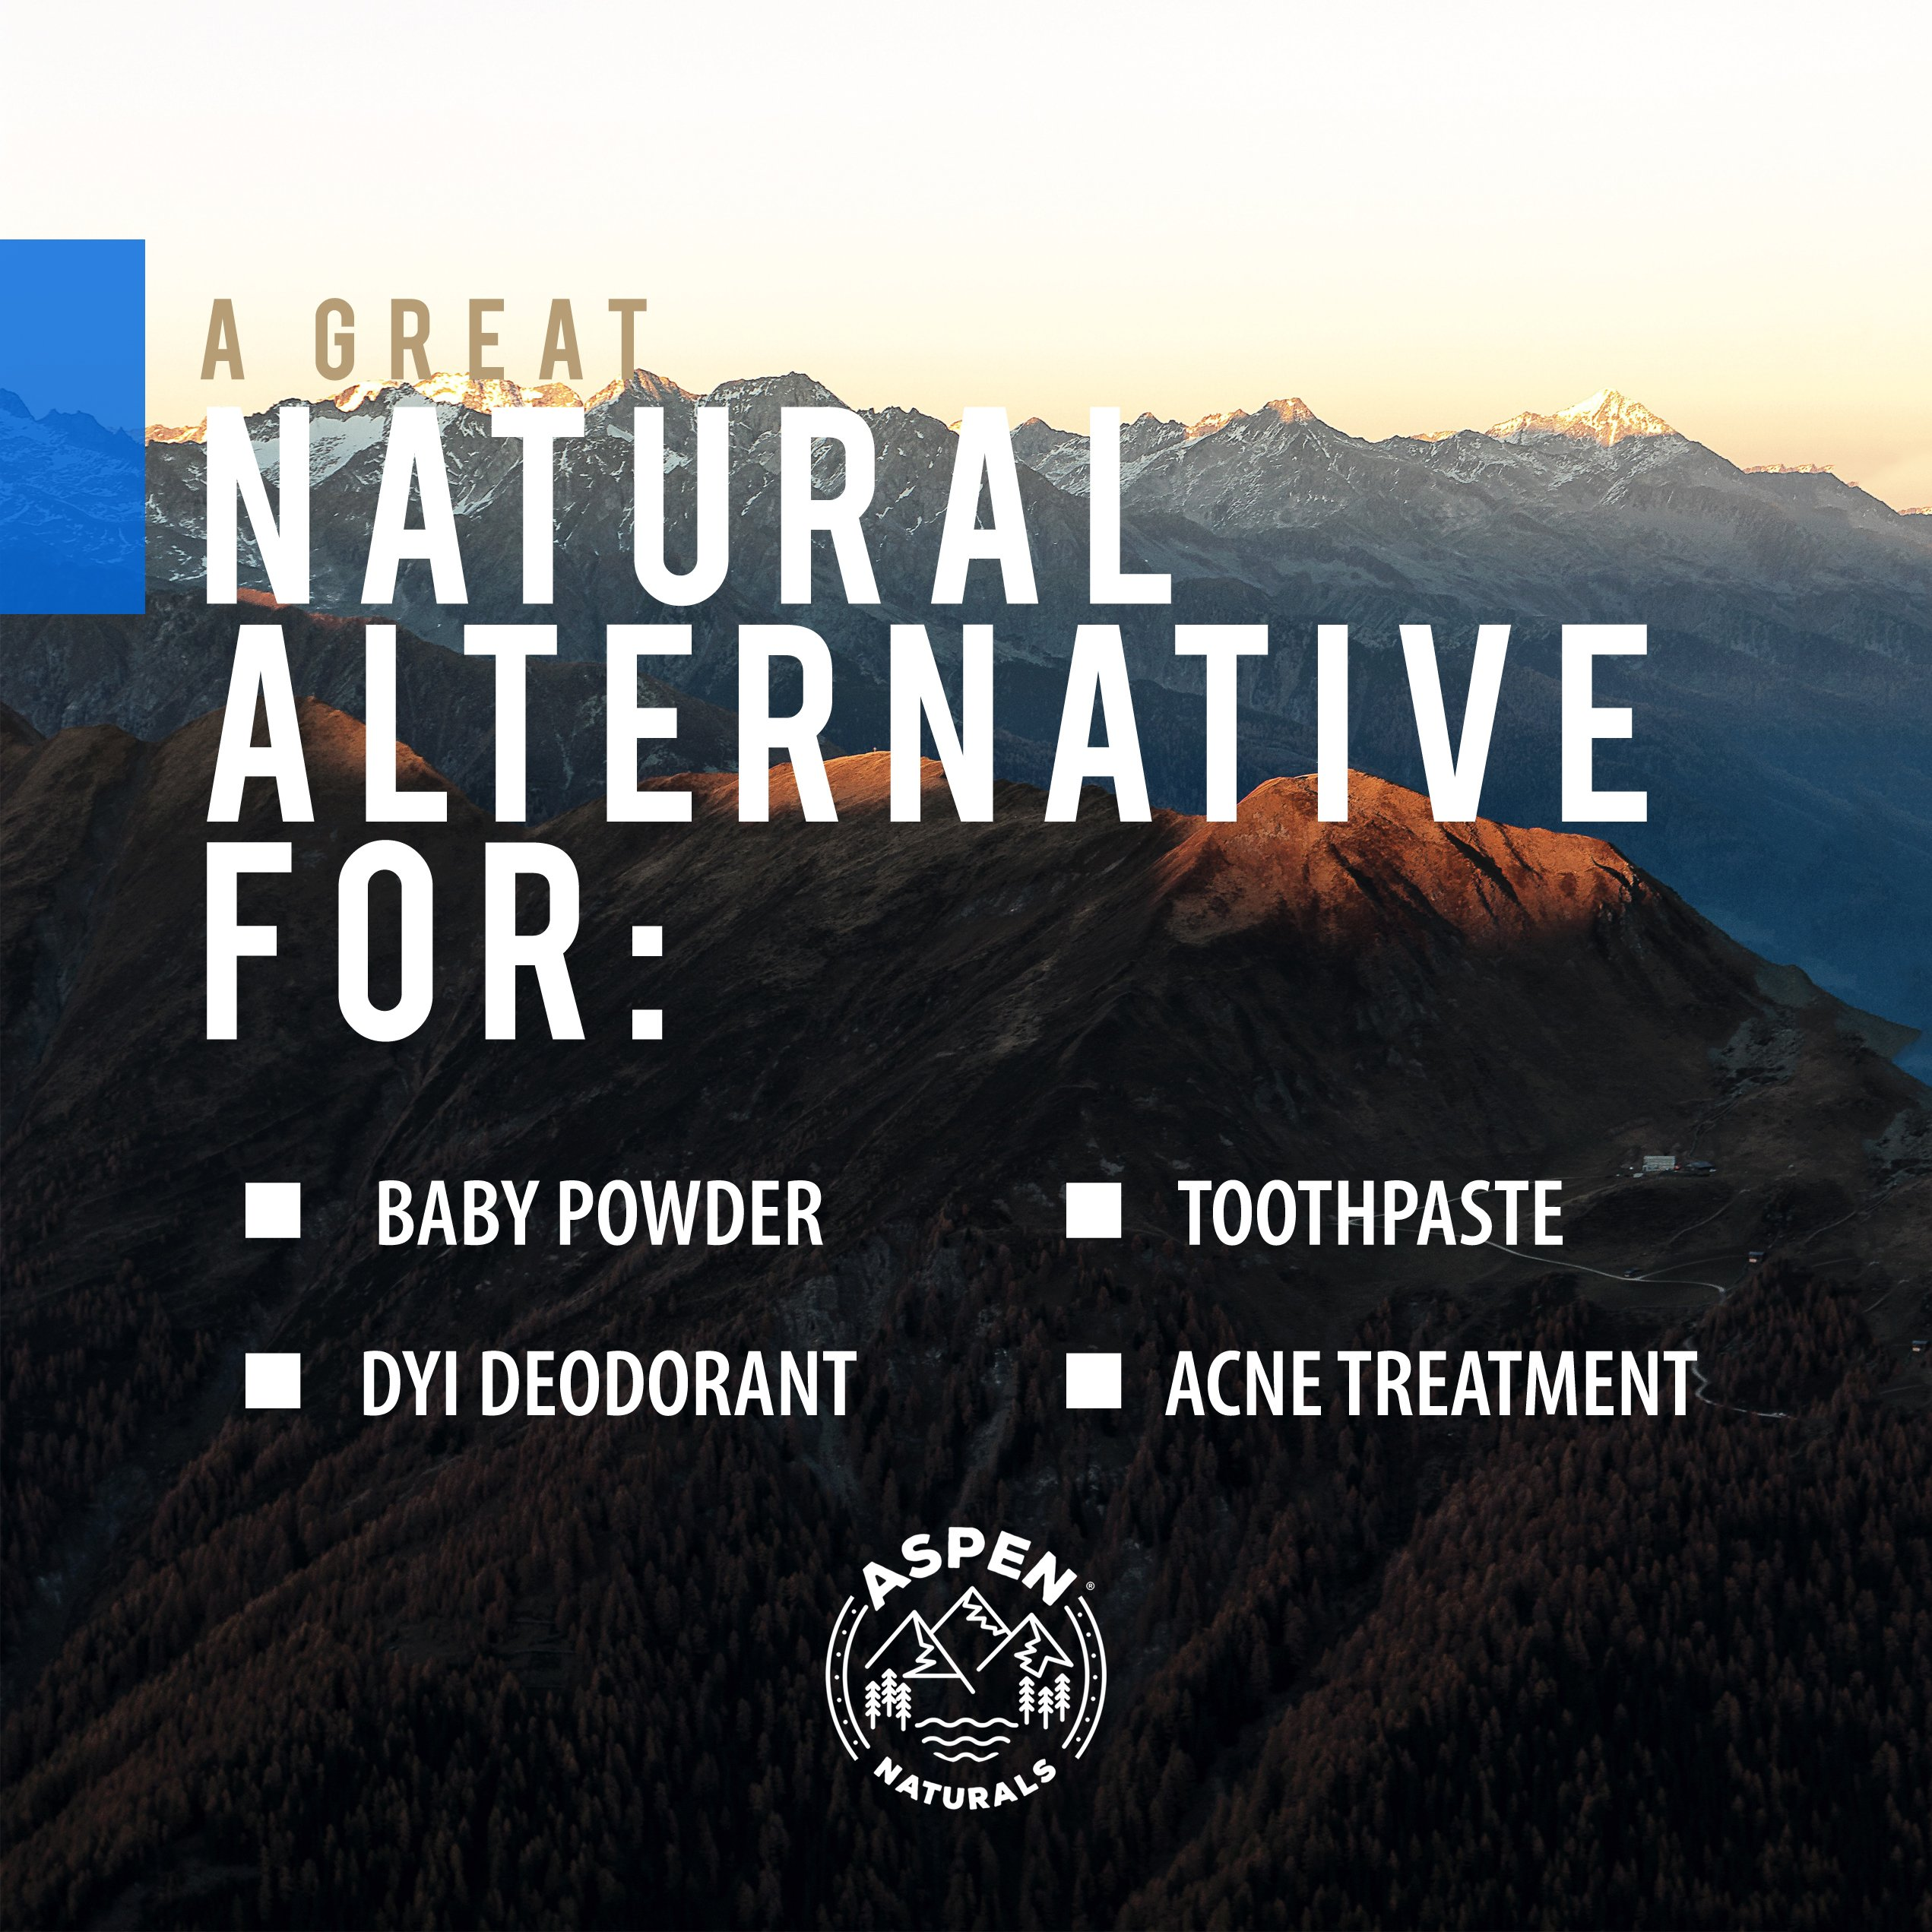 Food Grade Calcium Bentonite Clay - 2 LB Bentonite Montmorillonite Powder - Safe to Ingest for The Ultimate Internal Detox or Make a Clay Face Mask for The Best Natural Skin Healing Powder by Aspen Naturals® (Image #5)